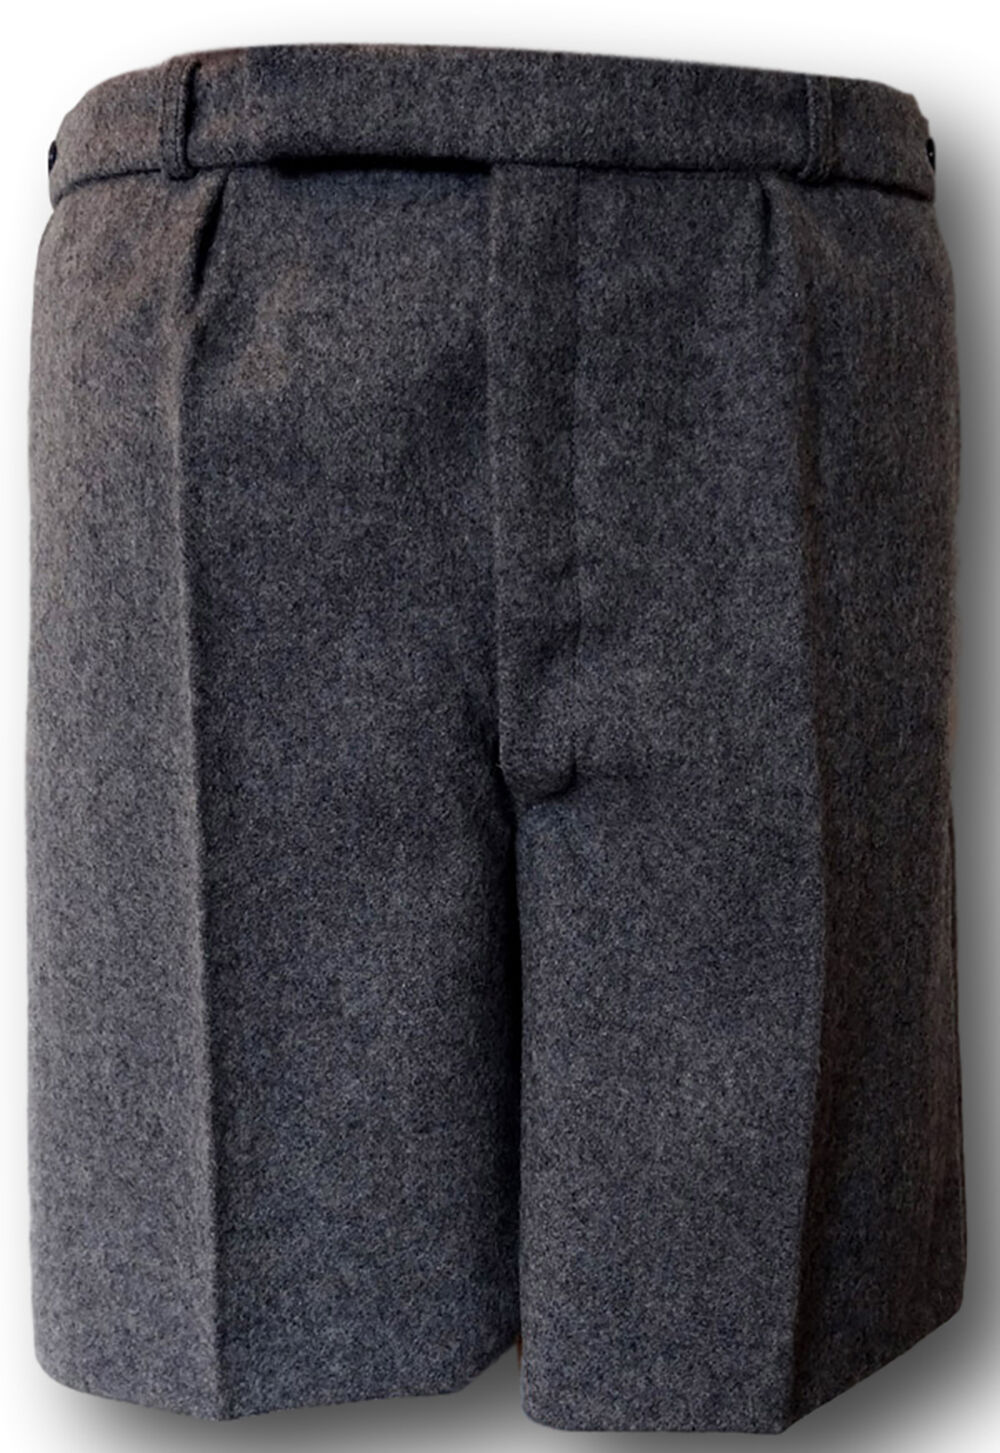 Shorts BUTTON FLY Adult Sizes Grey Wool Worsted School Uniform Short Trousers